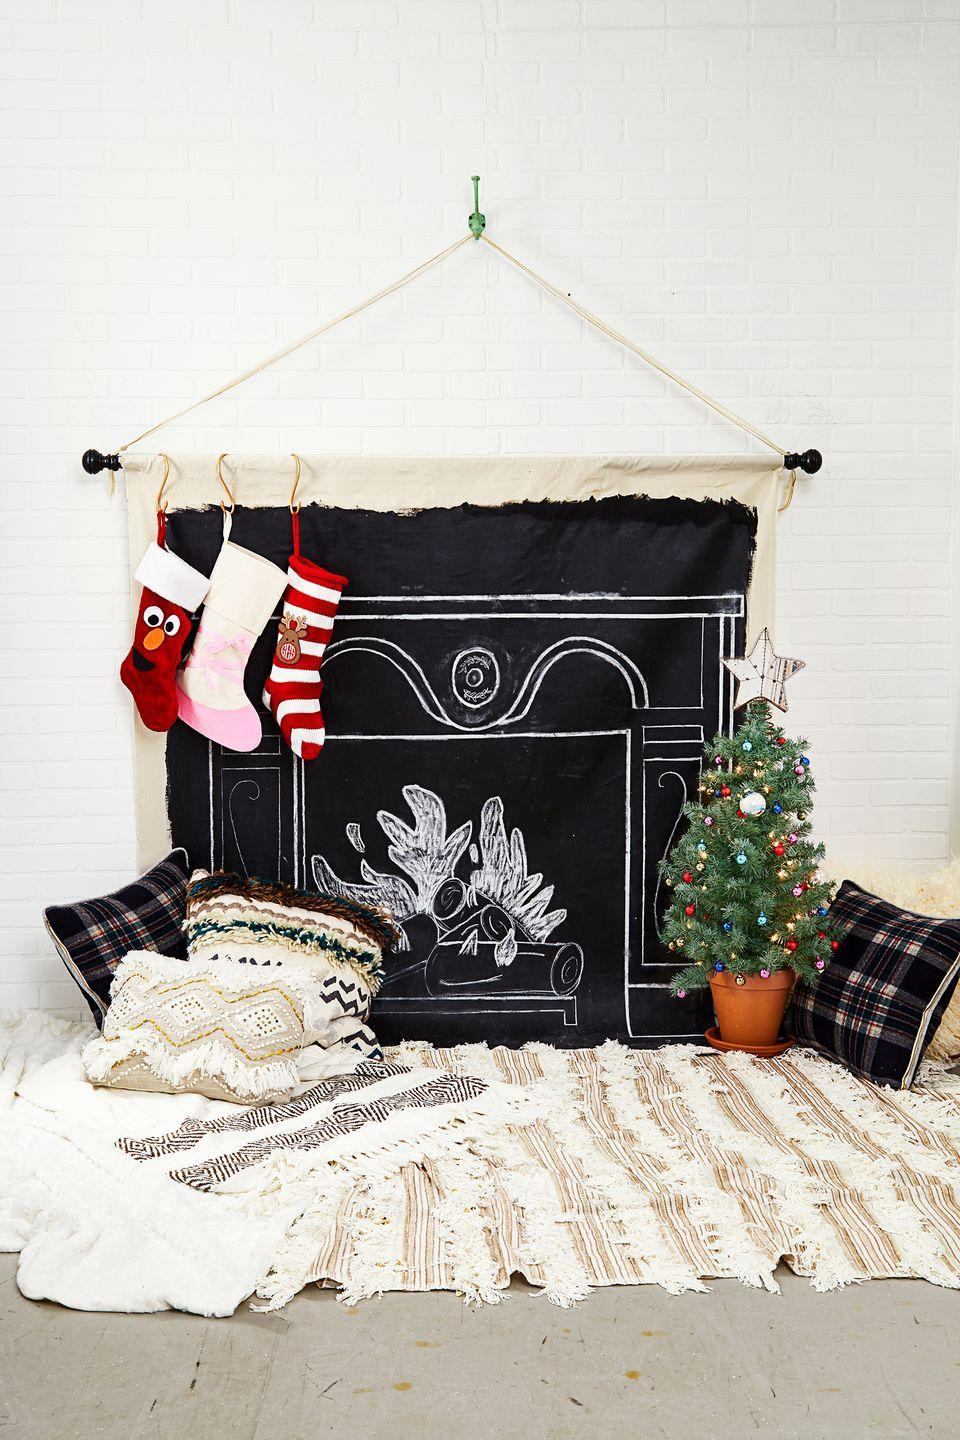 <p>Here's another way to fake the cozy fireplace experience. Draw a fake fireplace with painted chalk on canvas, hang your masterpiece from the wall, add stockings, and then surround it with floor cushions and blankets. This will be a total lifesaver if you live in a small apartment but still want to go big on the Christmas decor. Slide up a teeny tree for the full Christmas effect. </p>